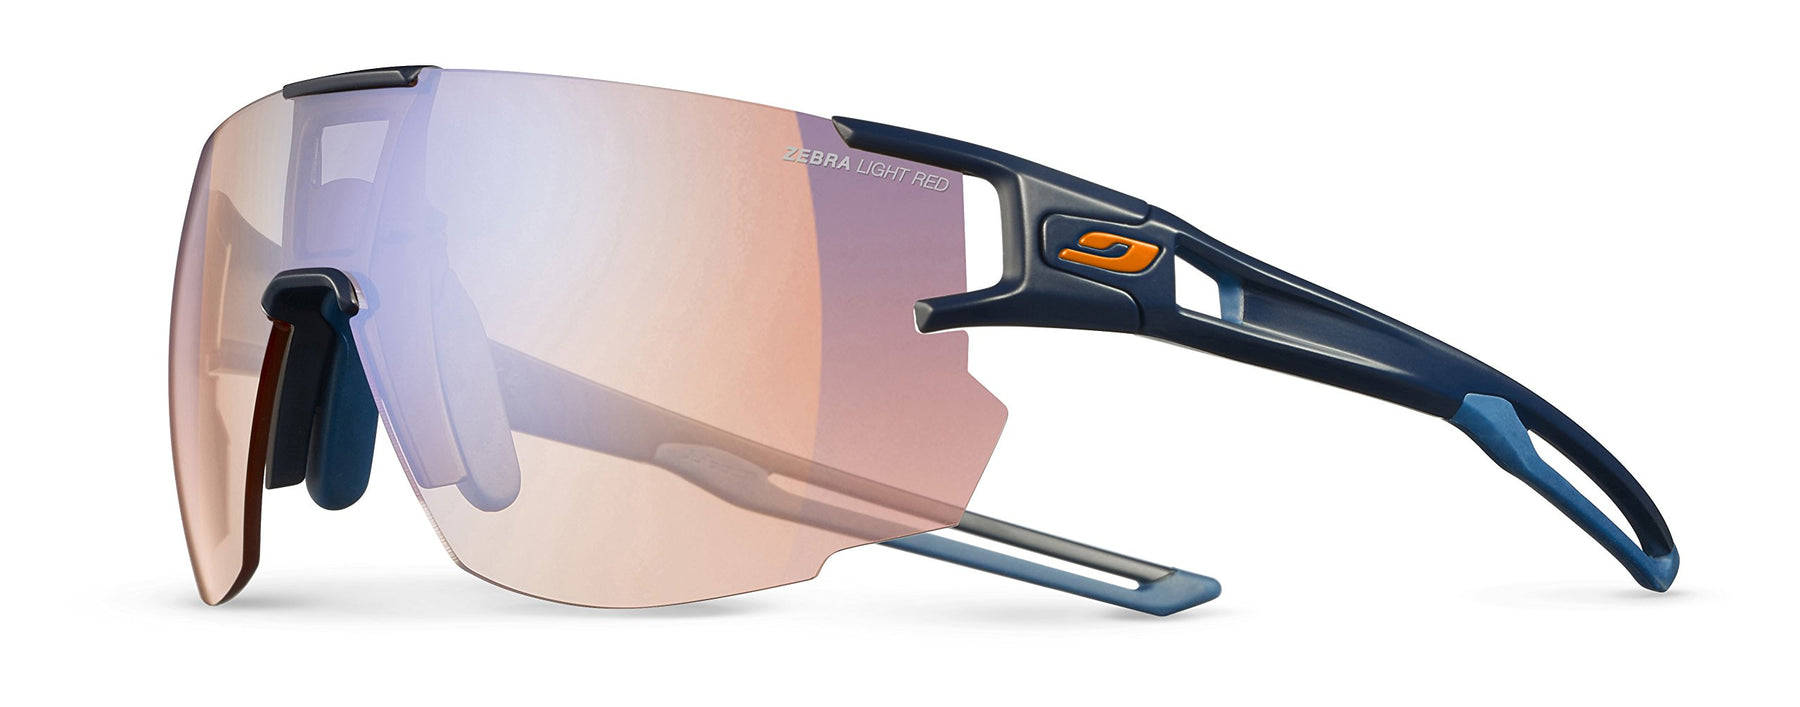 Julbo Aerospeed Sunglasses - Zebra Light Red - Dark Blue/Dark Blue/Orange